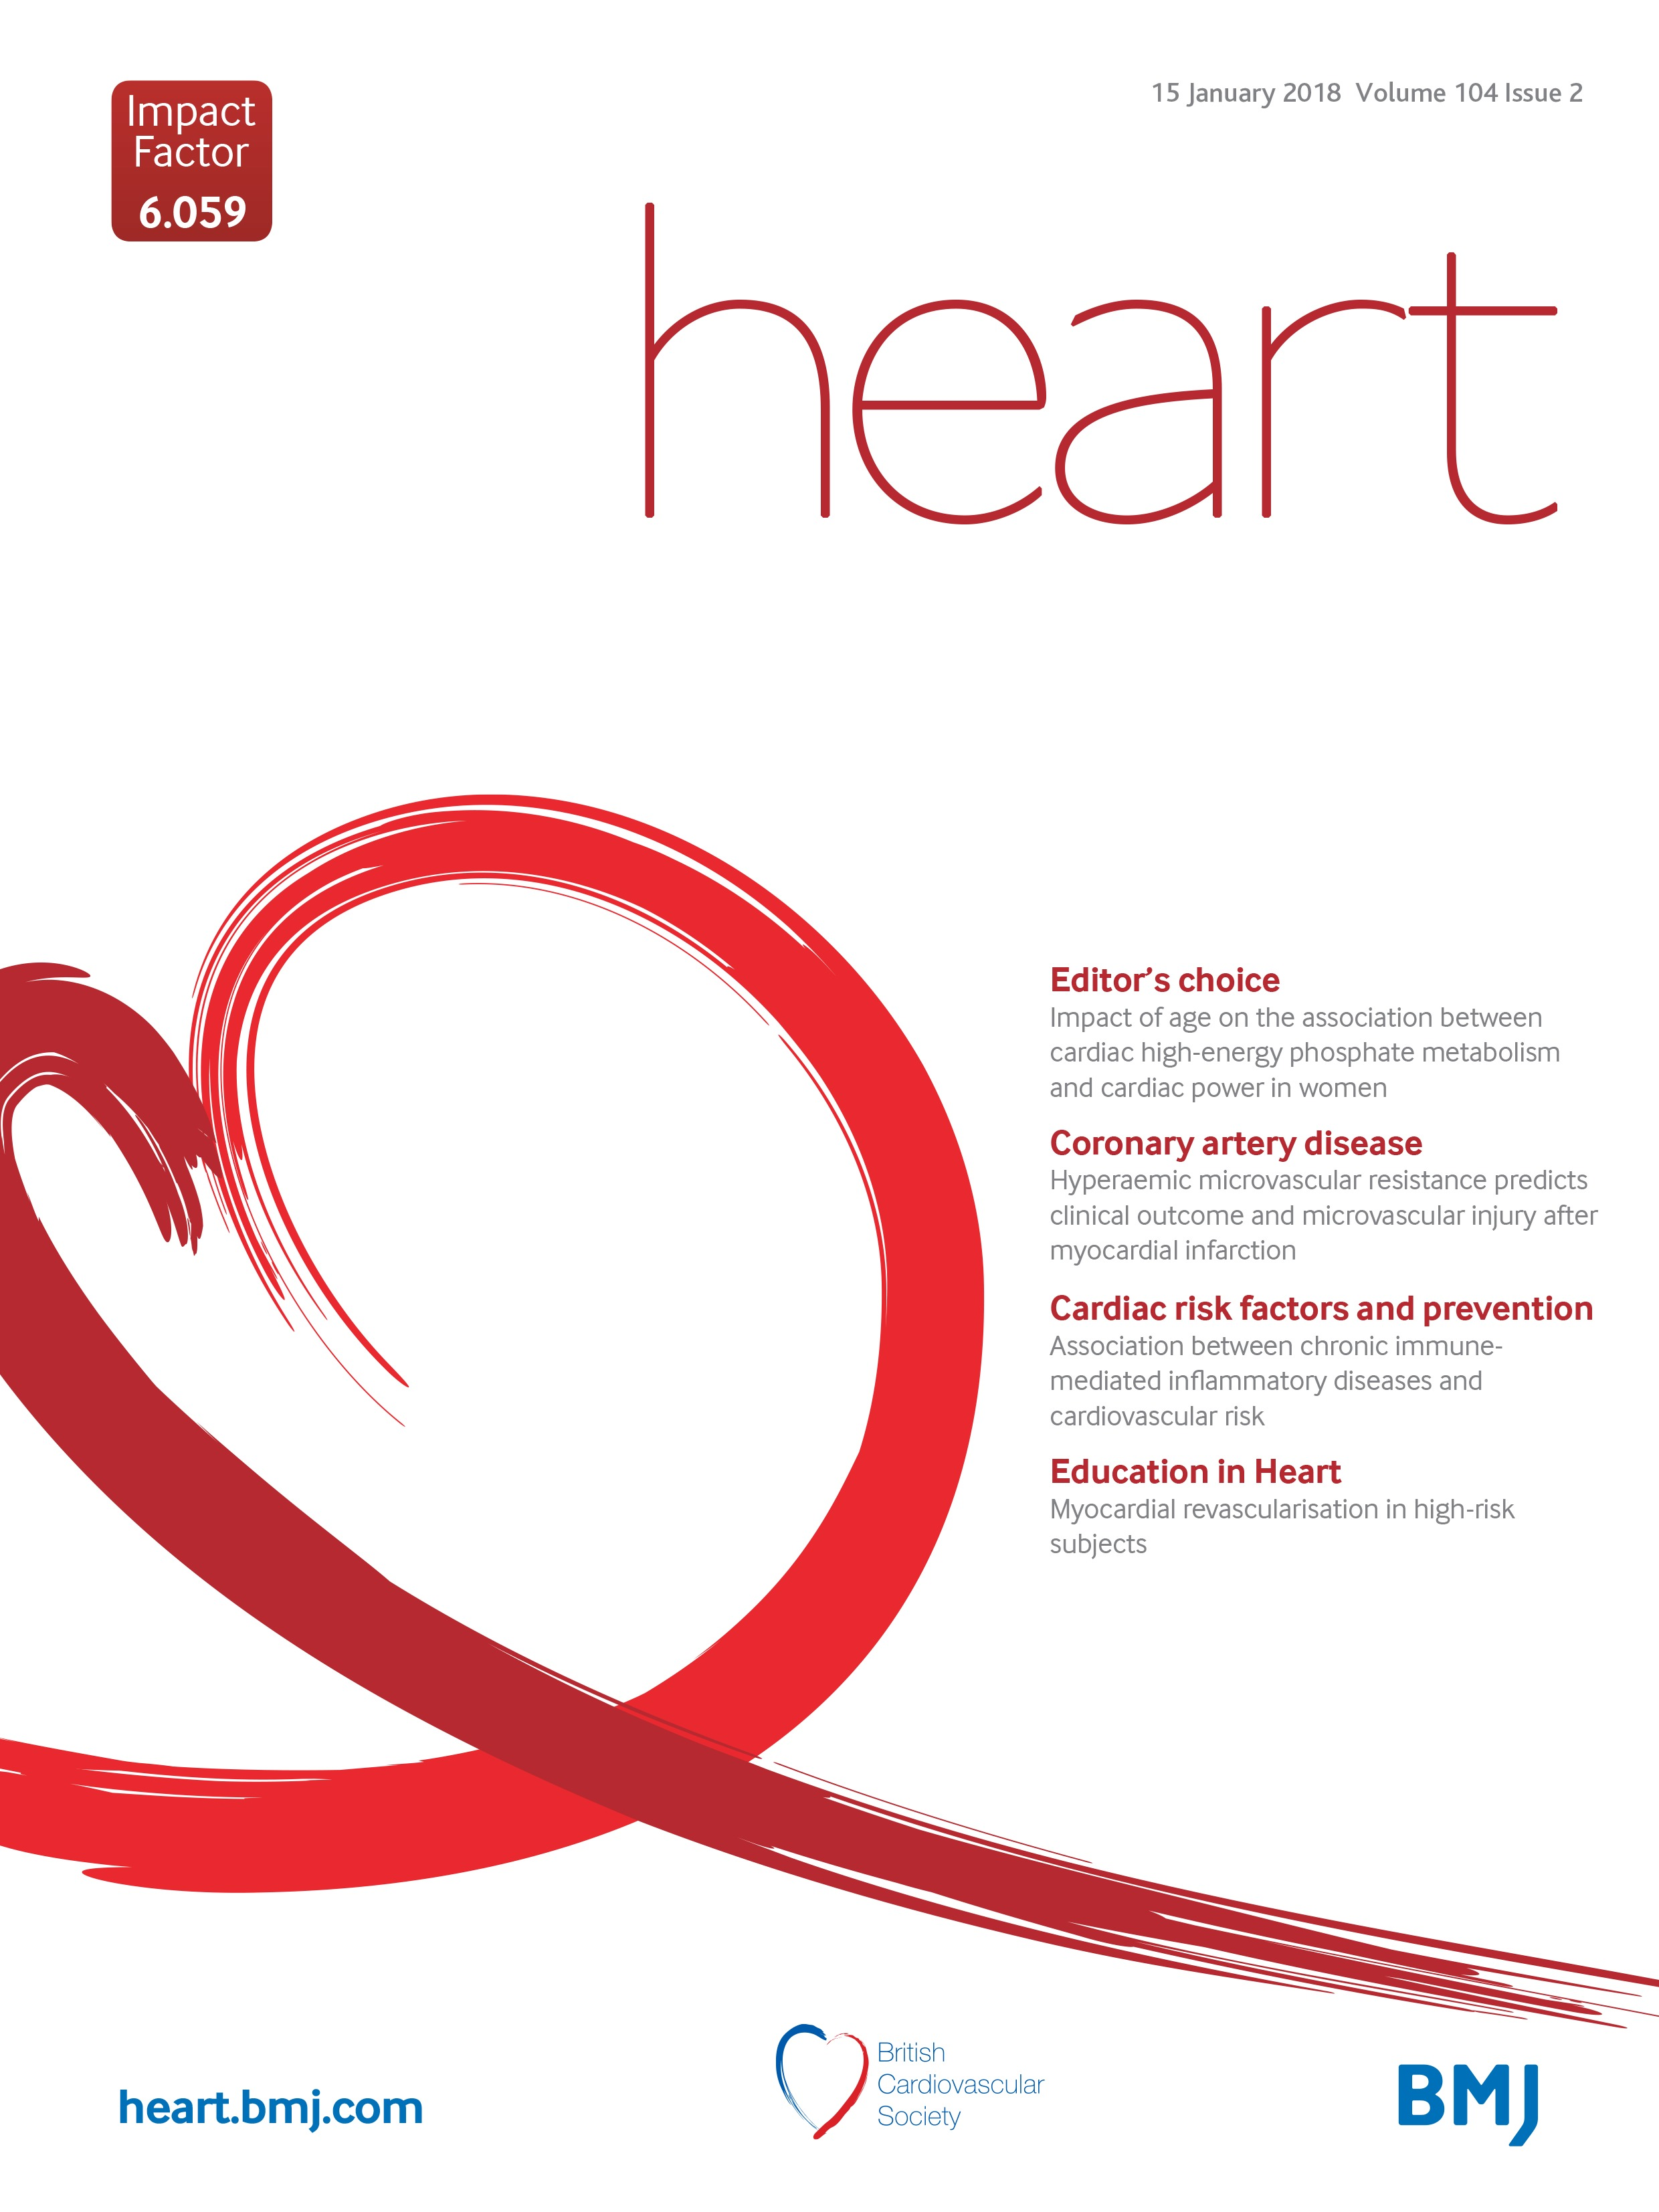 Impact of age on the association between cardiac high-energy